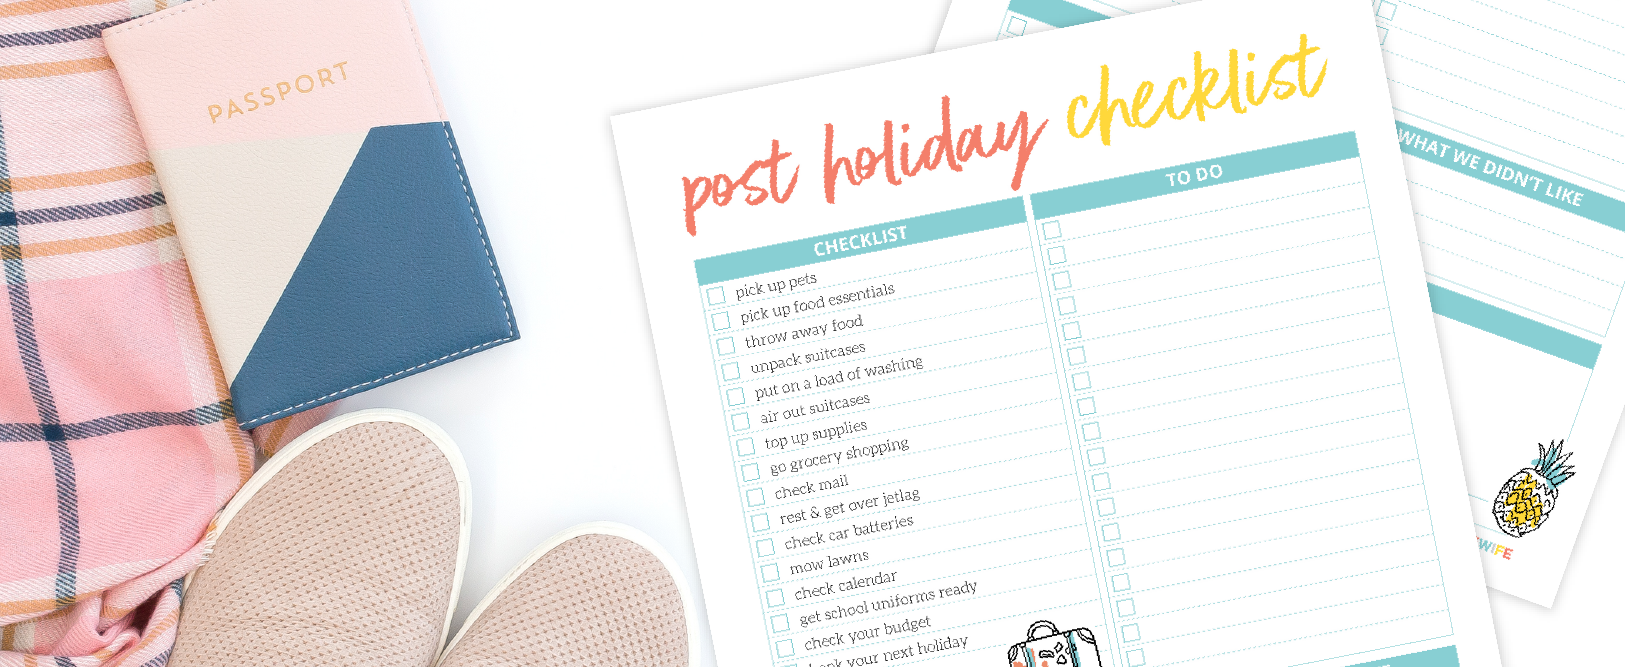 Post holiday checklist for when you get home from your trip